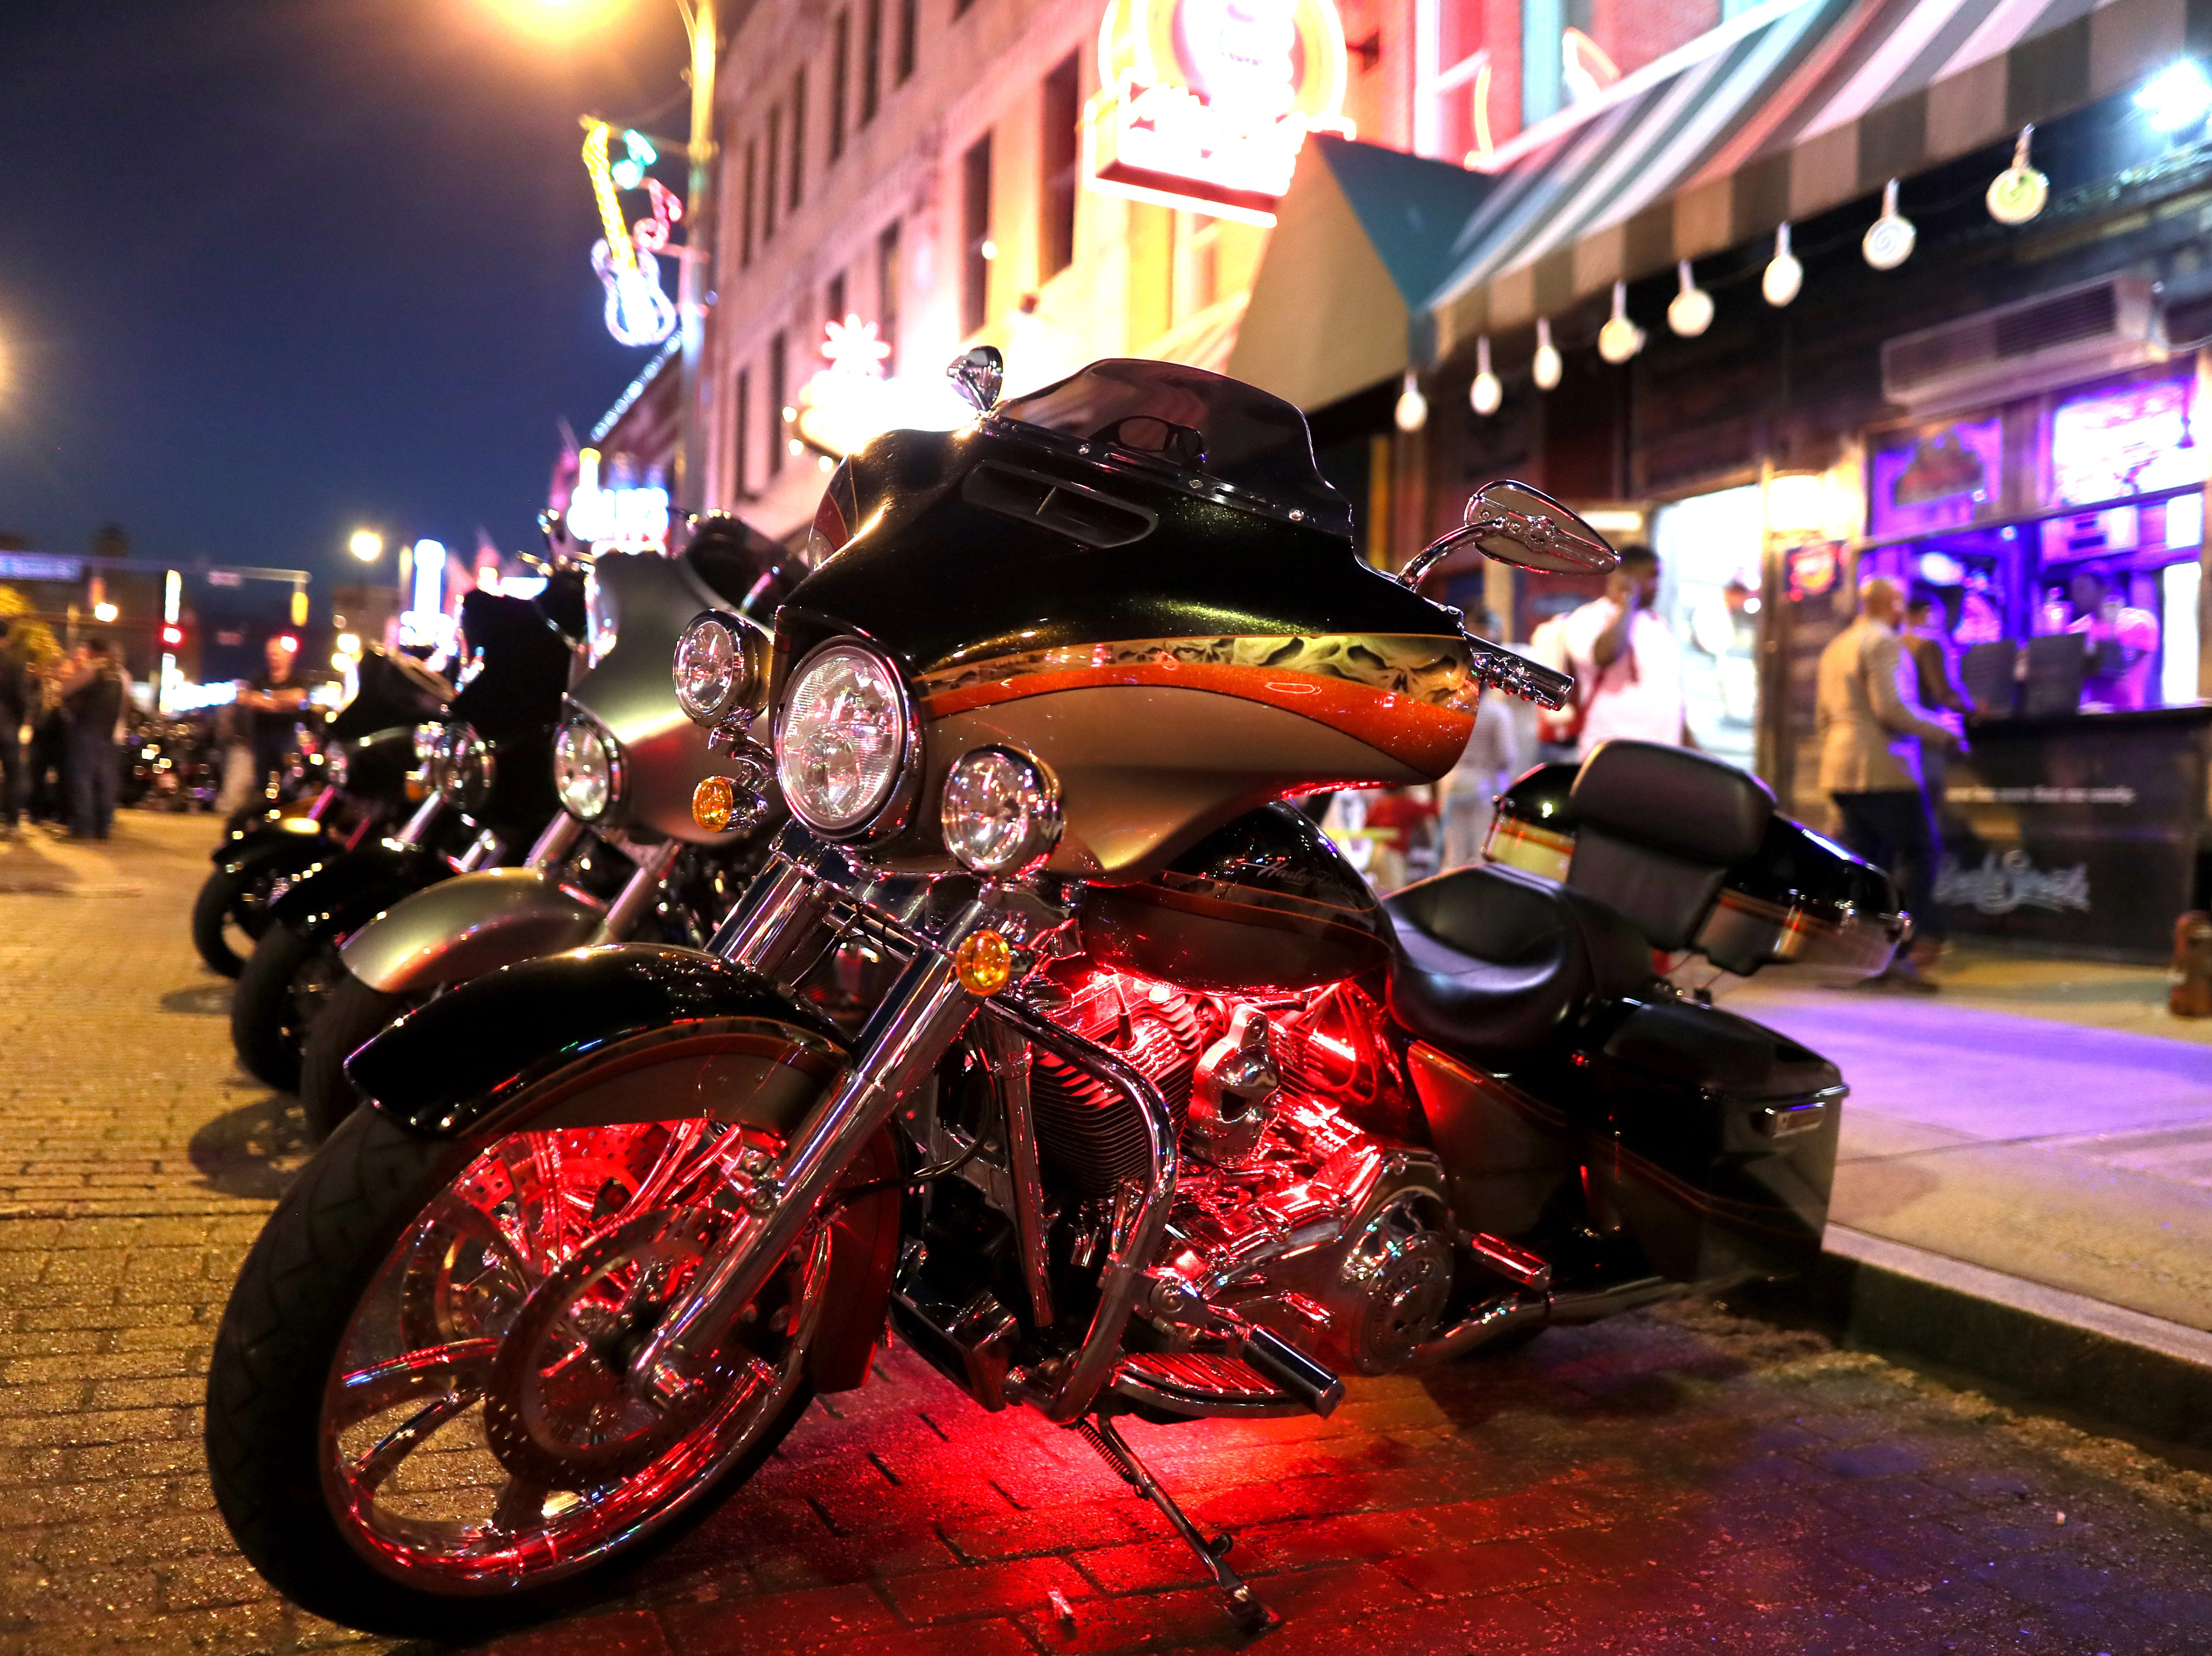 Bike Night on Beale Street kicks off for the season on Wednesday, April 17, 2019.